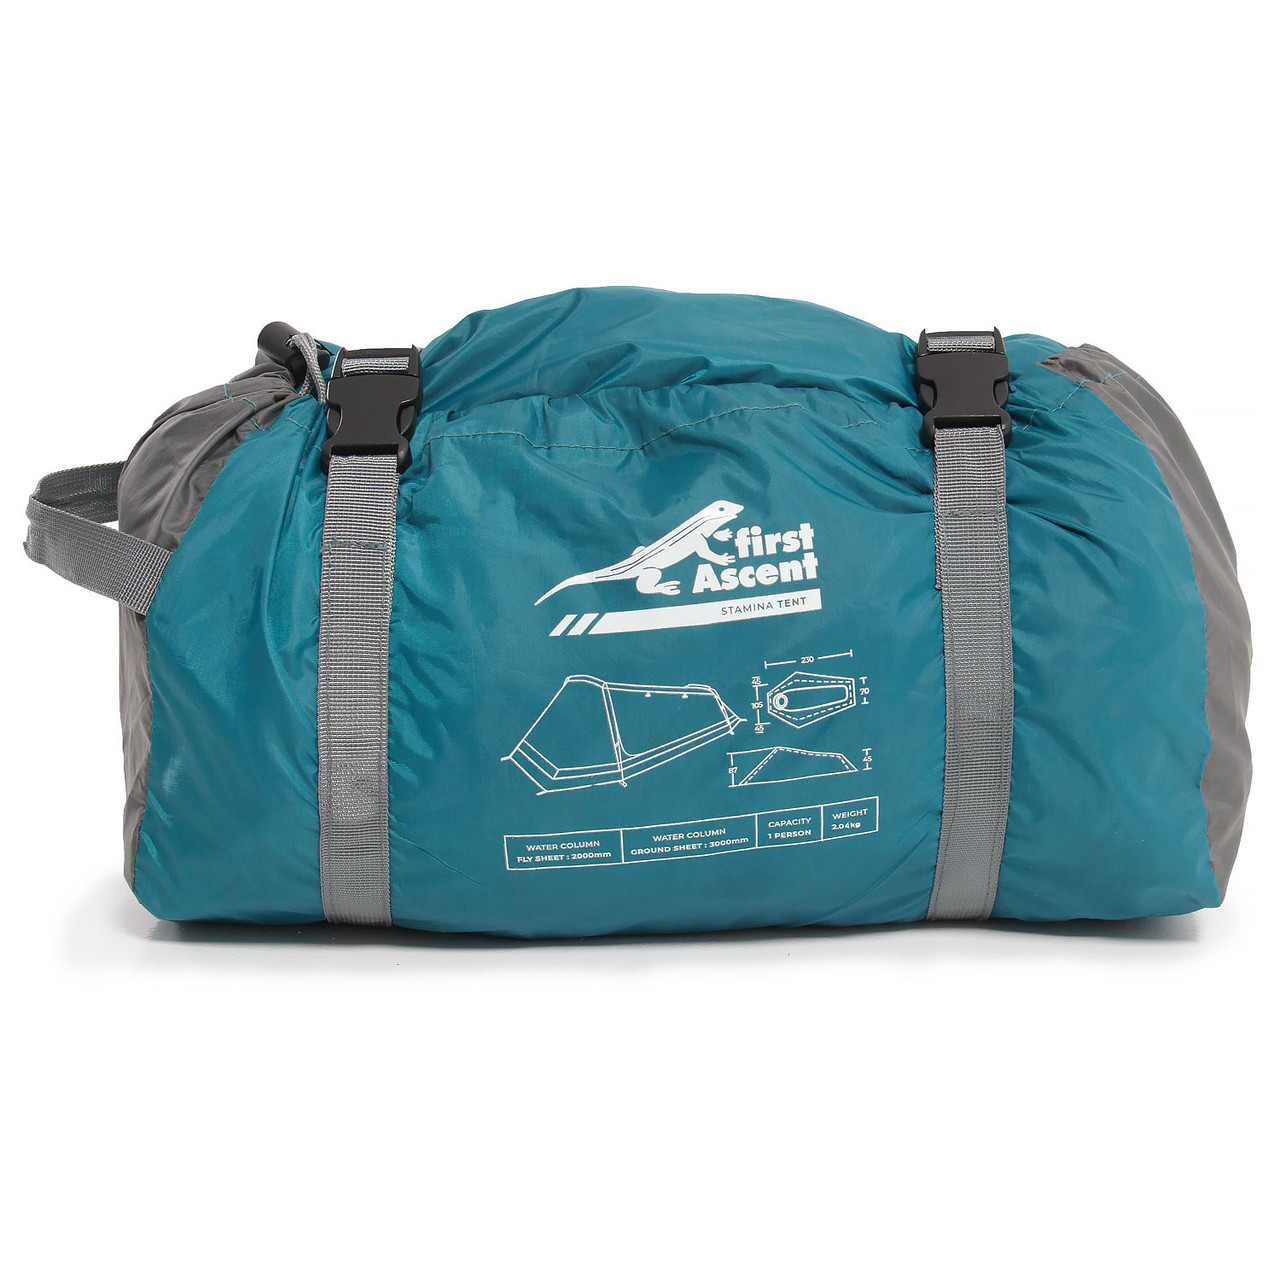 First Ascent Stamina - 1 Person Tent - Packed - Online at Mountain Mail Order South Africa